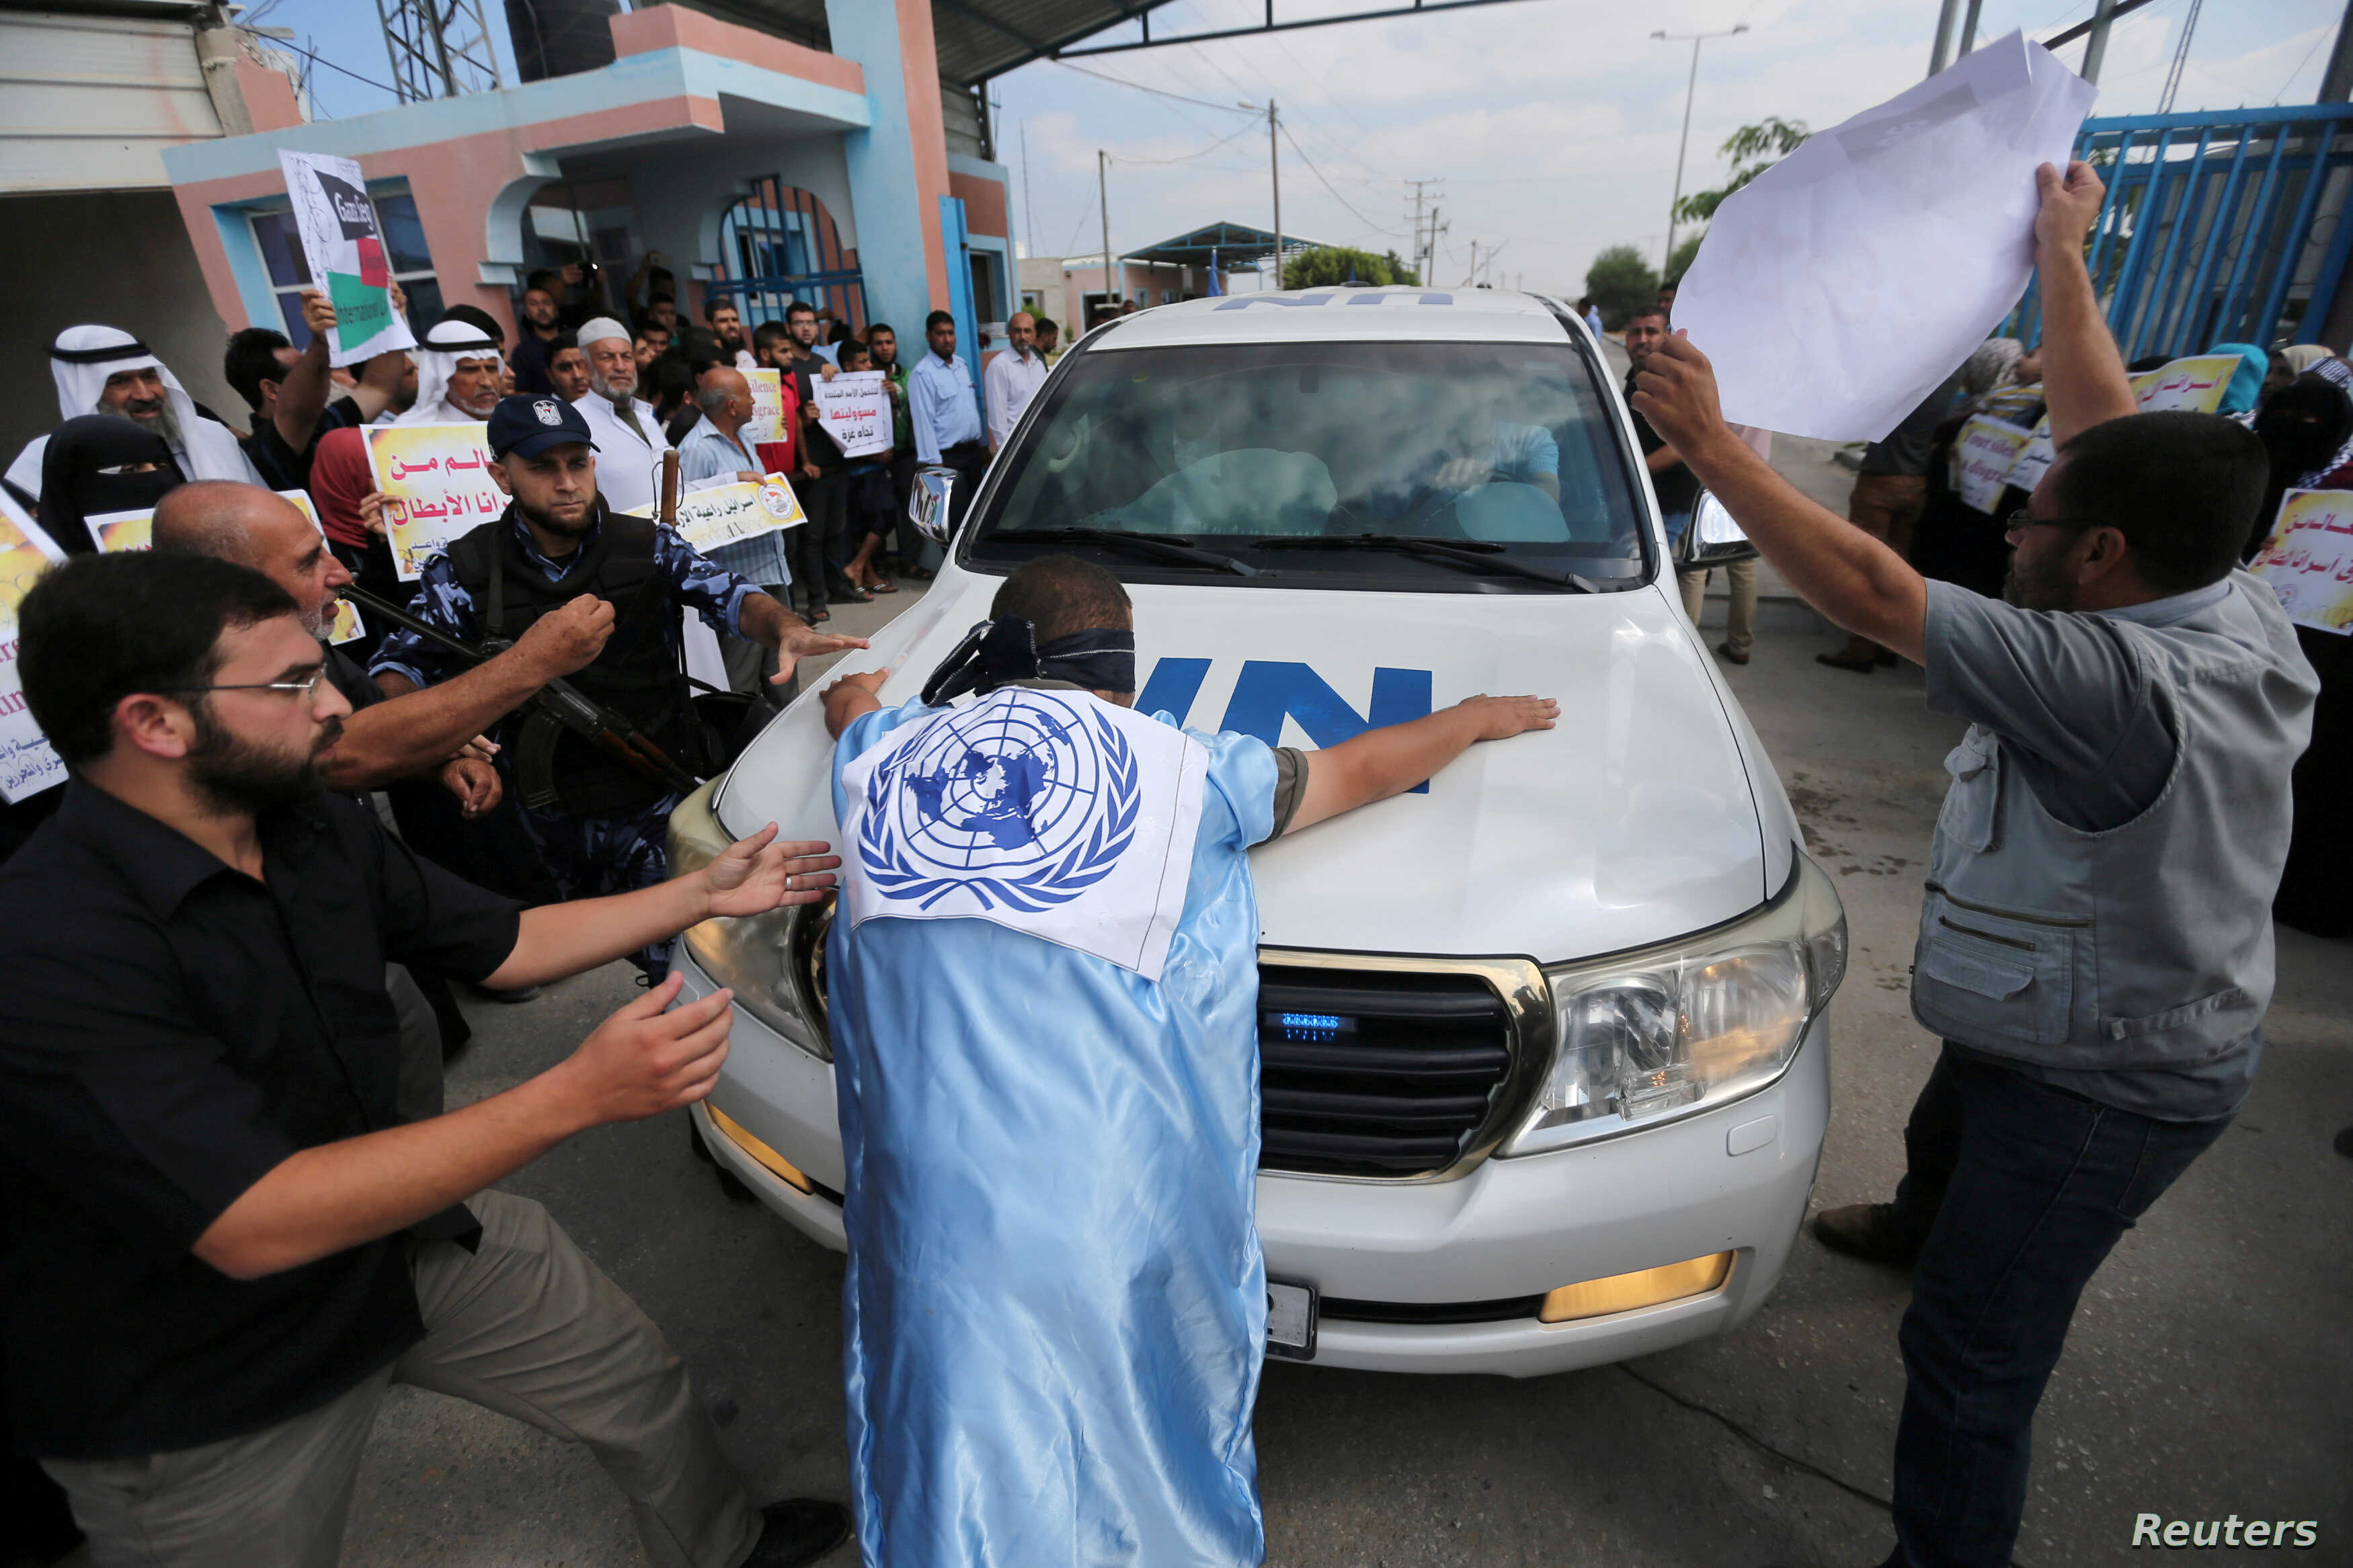 Palestinians try to block the convoy of United Nations Secretary-General Antonio Guterres upon his arrival near Erez crossing in the northern Gaza Strip, August 30, 2017.